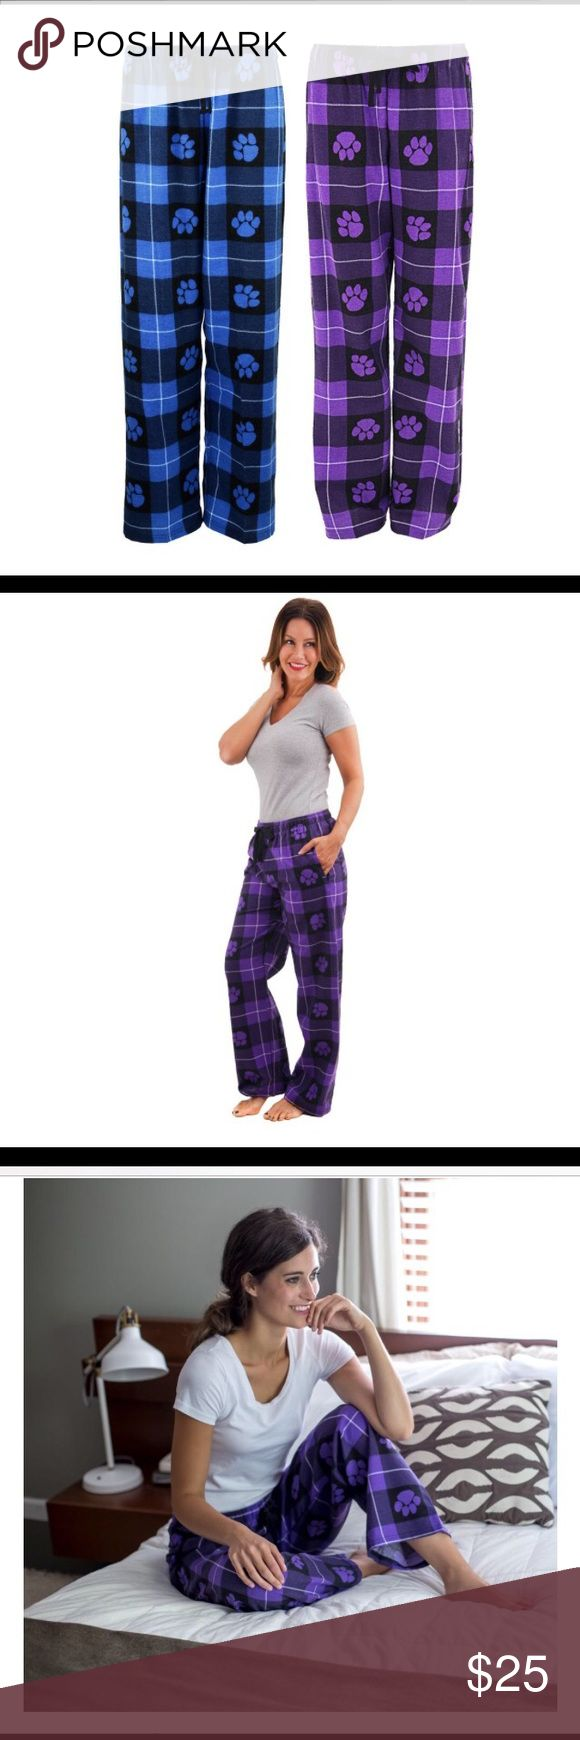 NEW! 🐾 PAW PRINT FLANNEL PAJAMA BOTTOMS 2X New! Purple and black paw print flannel pajama pants purchased from Greater Goods. I got double gifted for Christmas so I'm selling a purple and a blue pair. They are true to size and excellent quality! You won't regret buying these! A donation feeds animals and provides medical care as well from purchases are made on Greater Goods so price may seem pricey...PLEASE, NO OFFERS! Greater Goods Intimates & Sleepwear Pajamas